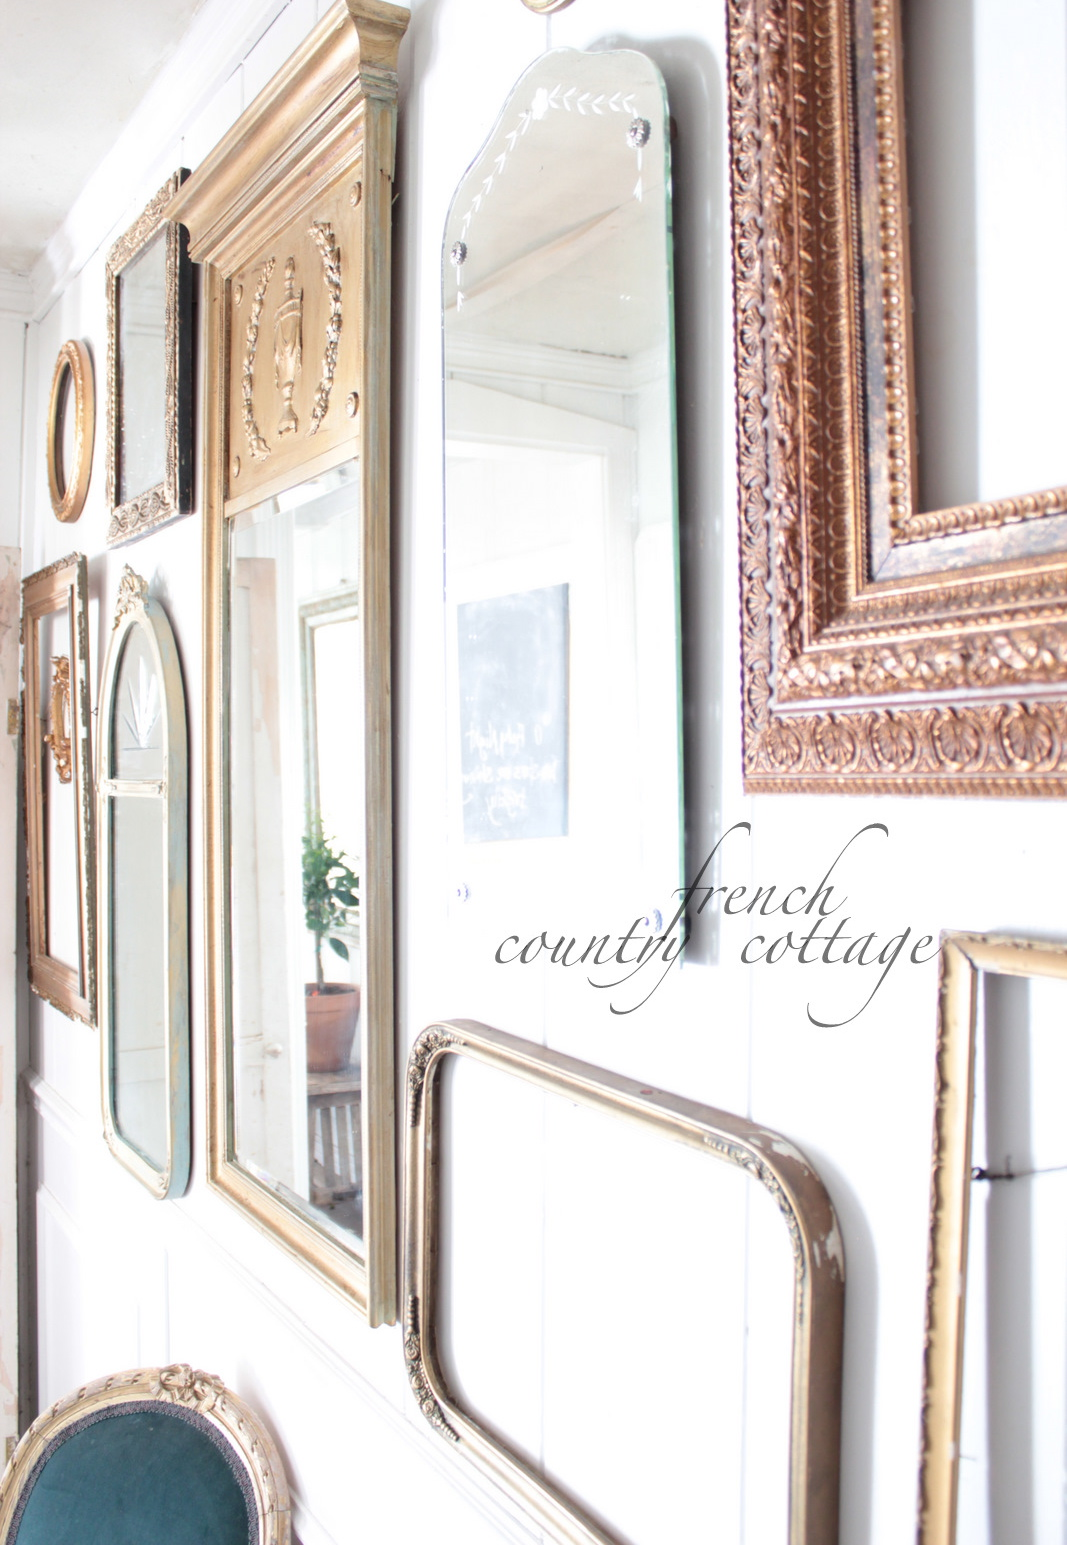 Gallery wall of frames mirrors french country cottage for Bungalow style picture frames